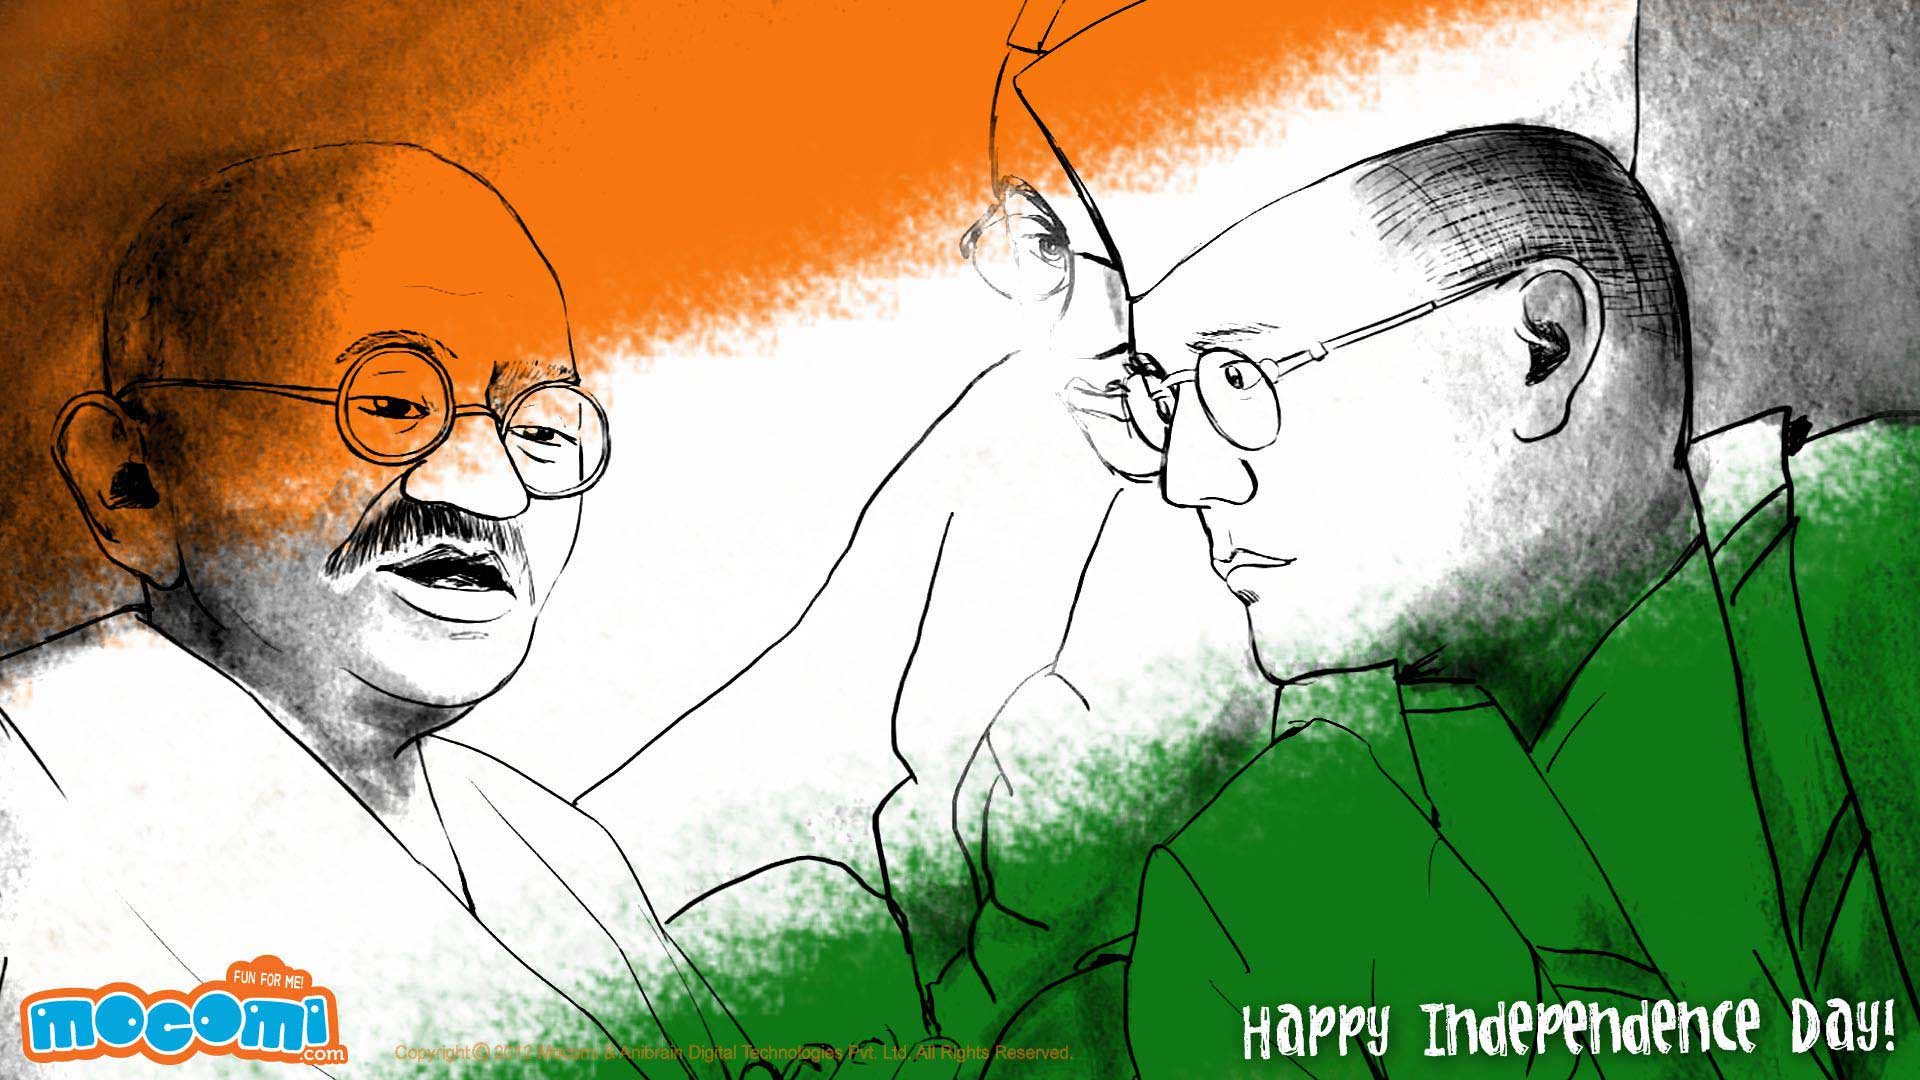 Independence Day – Freedom Fighters